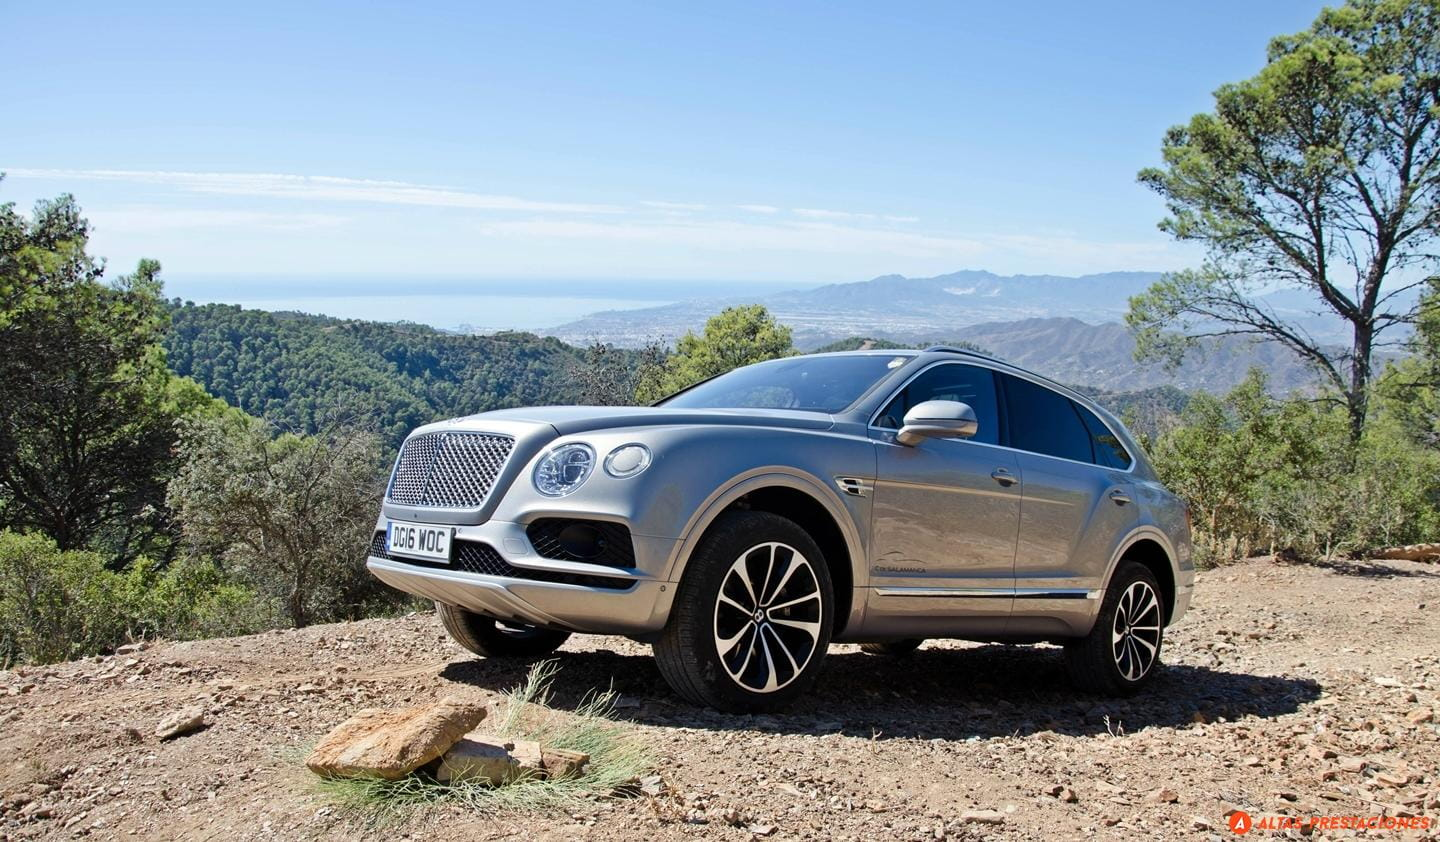 bentley-bentayga-prueba-david-clavero-0816-022-mapdm